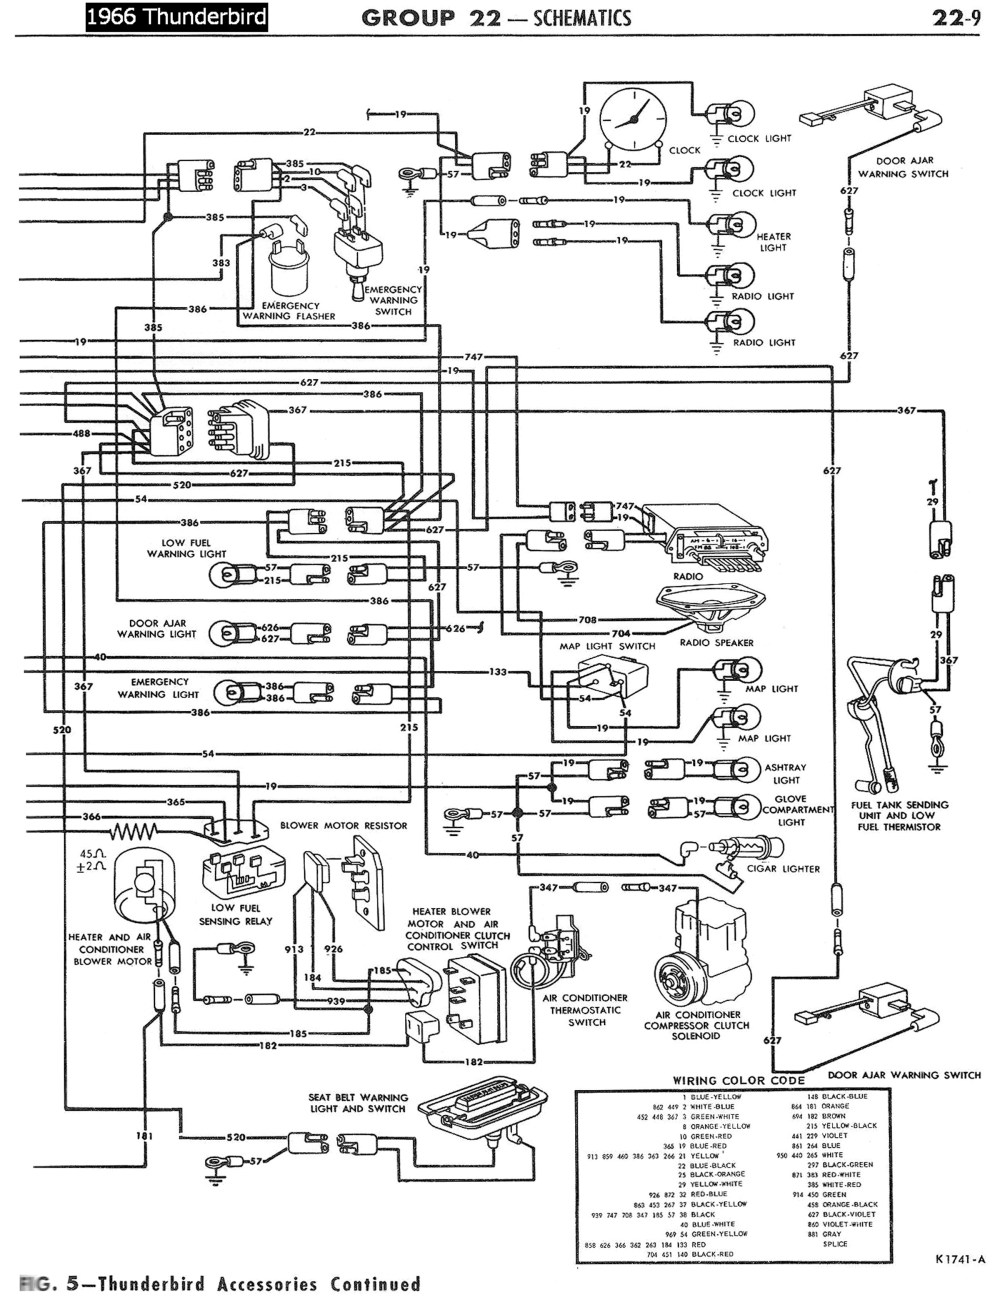 medium resolution of 1958 68 ford electrical schematics 1956 thunderbird wiring diagram 1966 thunderbird wiring diagram